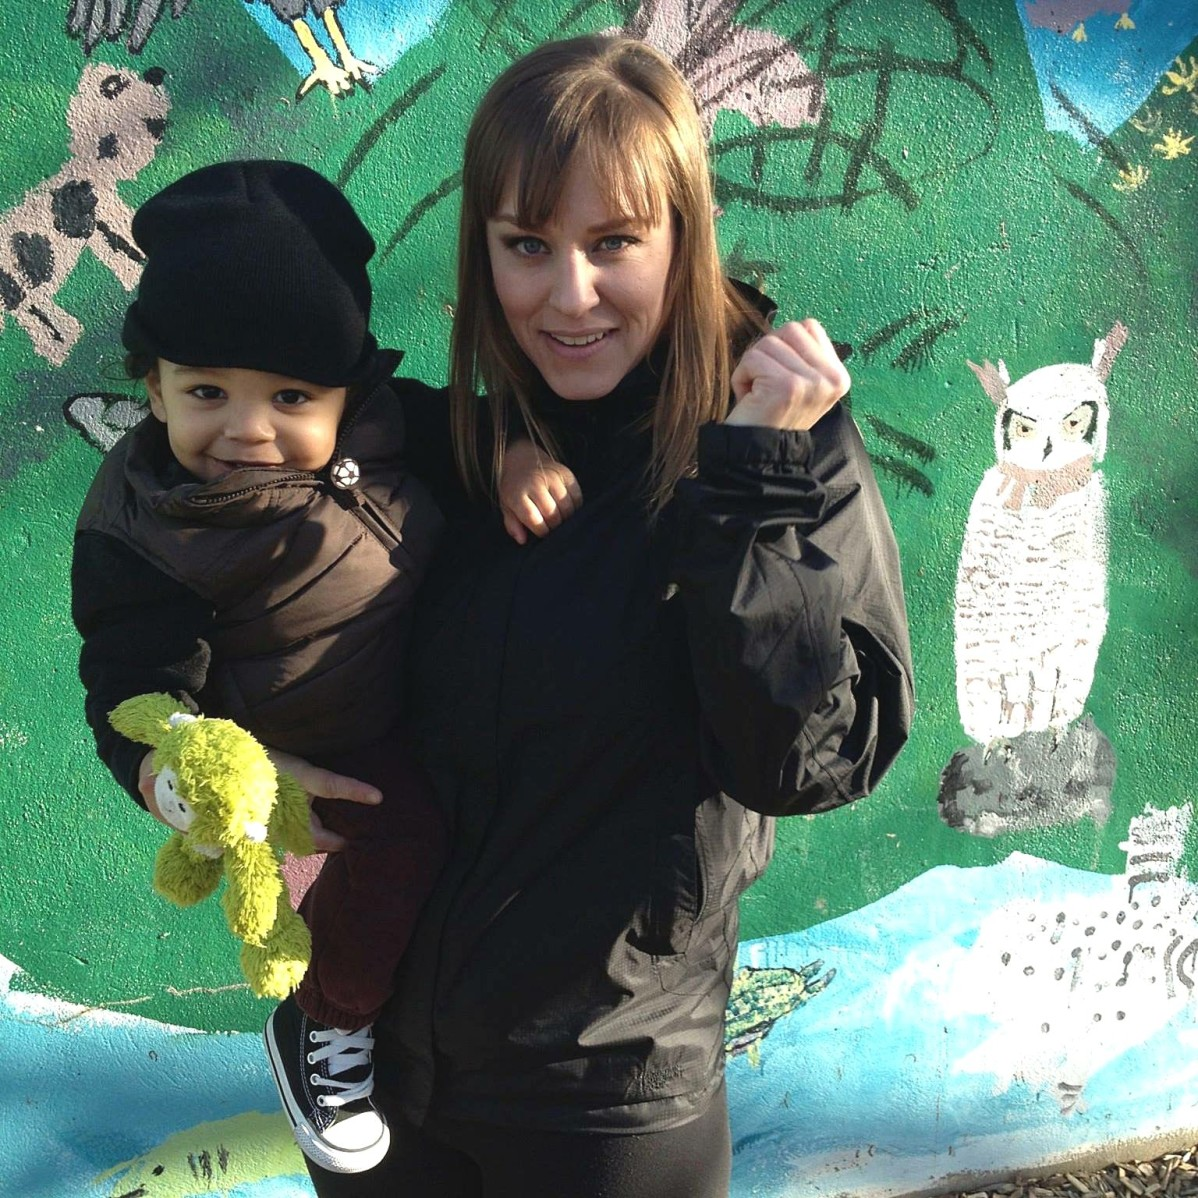 Image of Shana Kealey and her son Kiyan